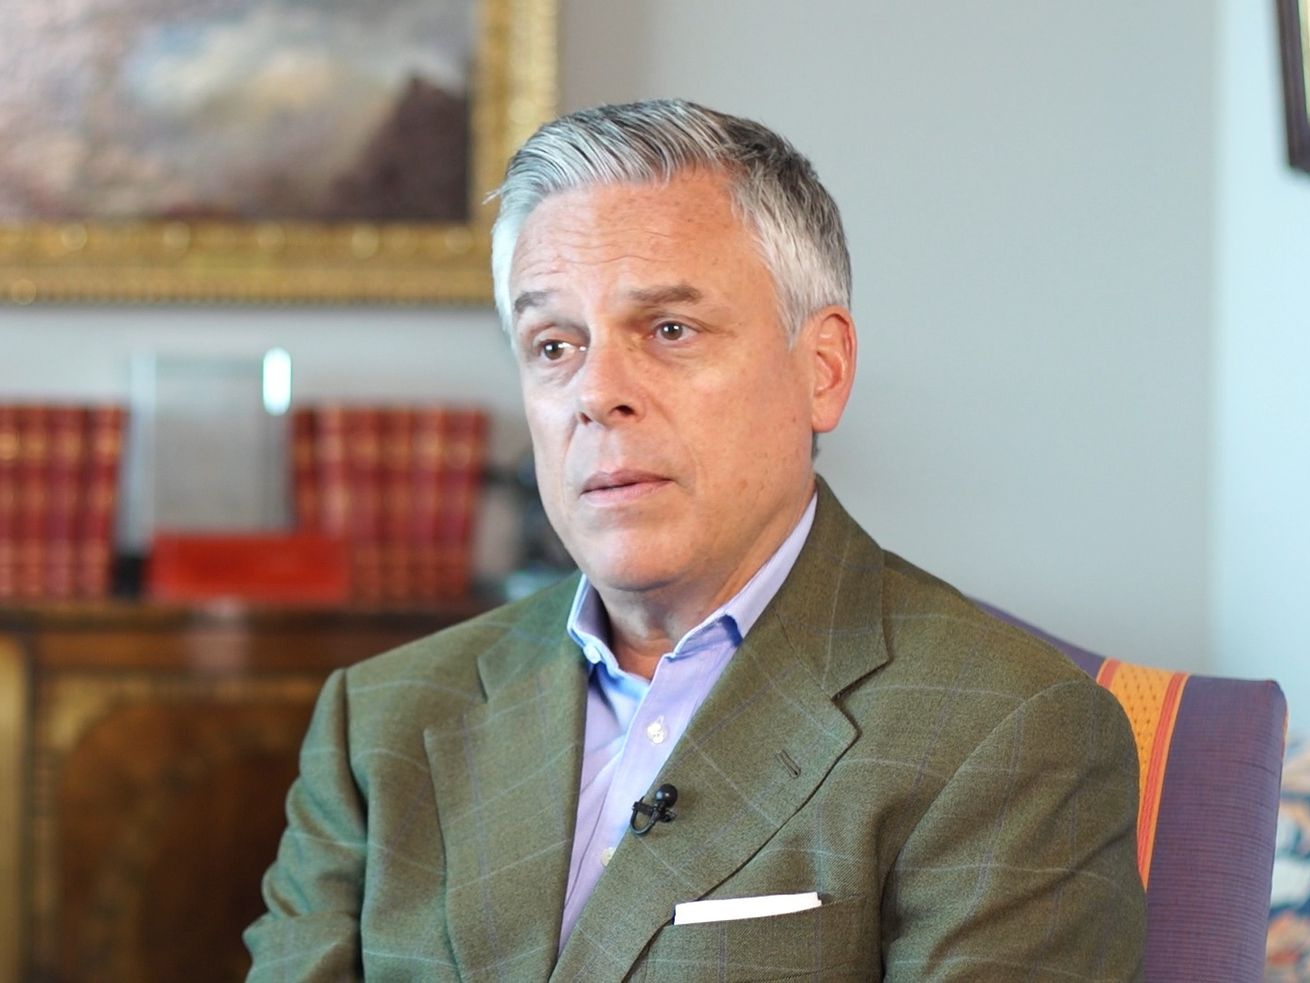 Jon Huntsman says impeachment is divisive, leaves 'lasting scars' on nation